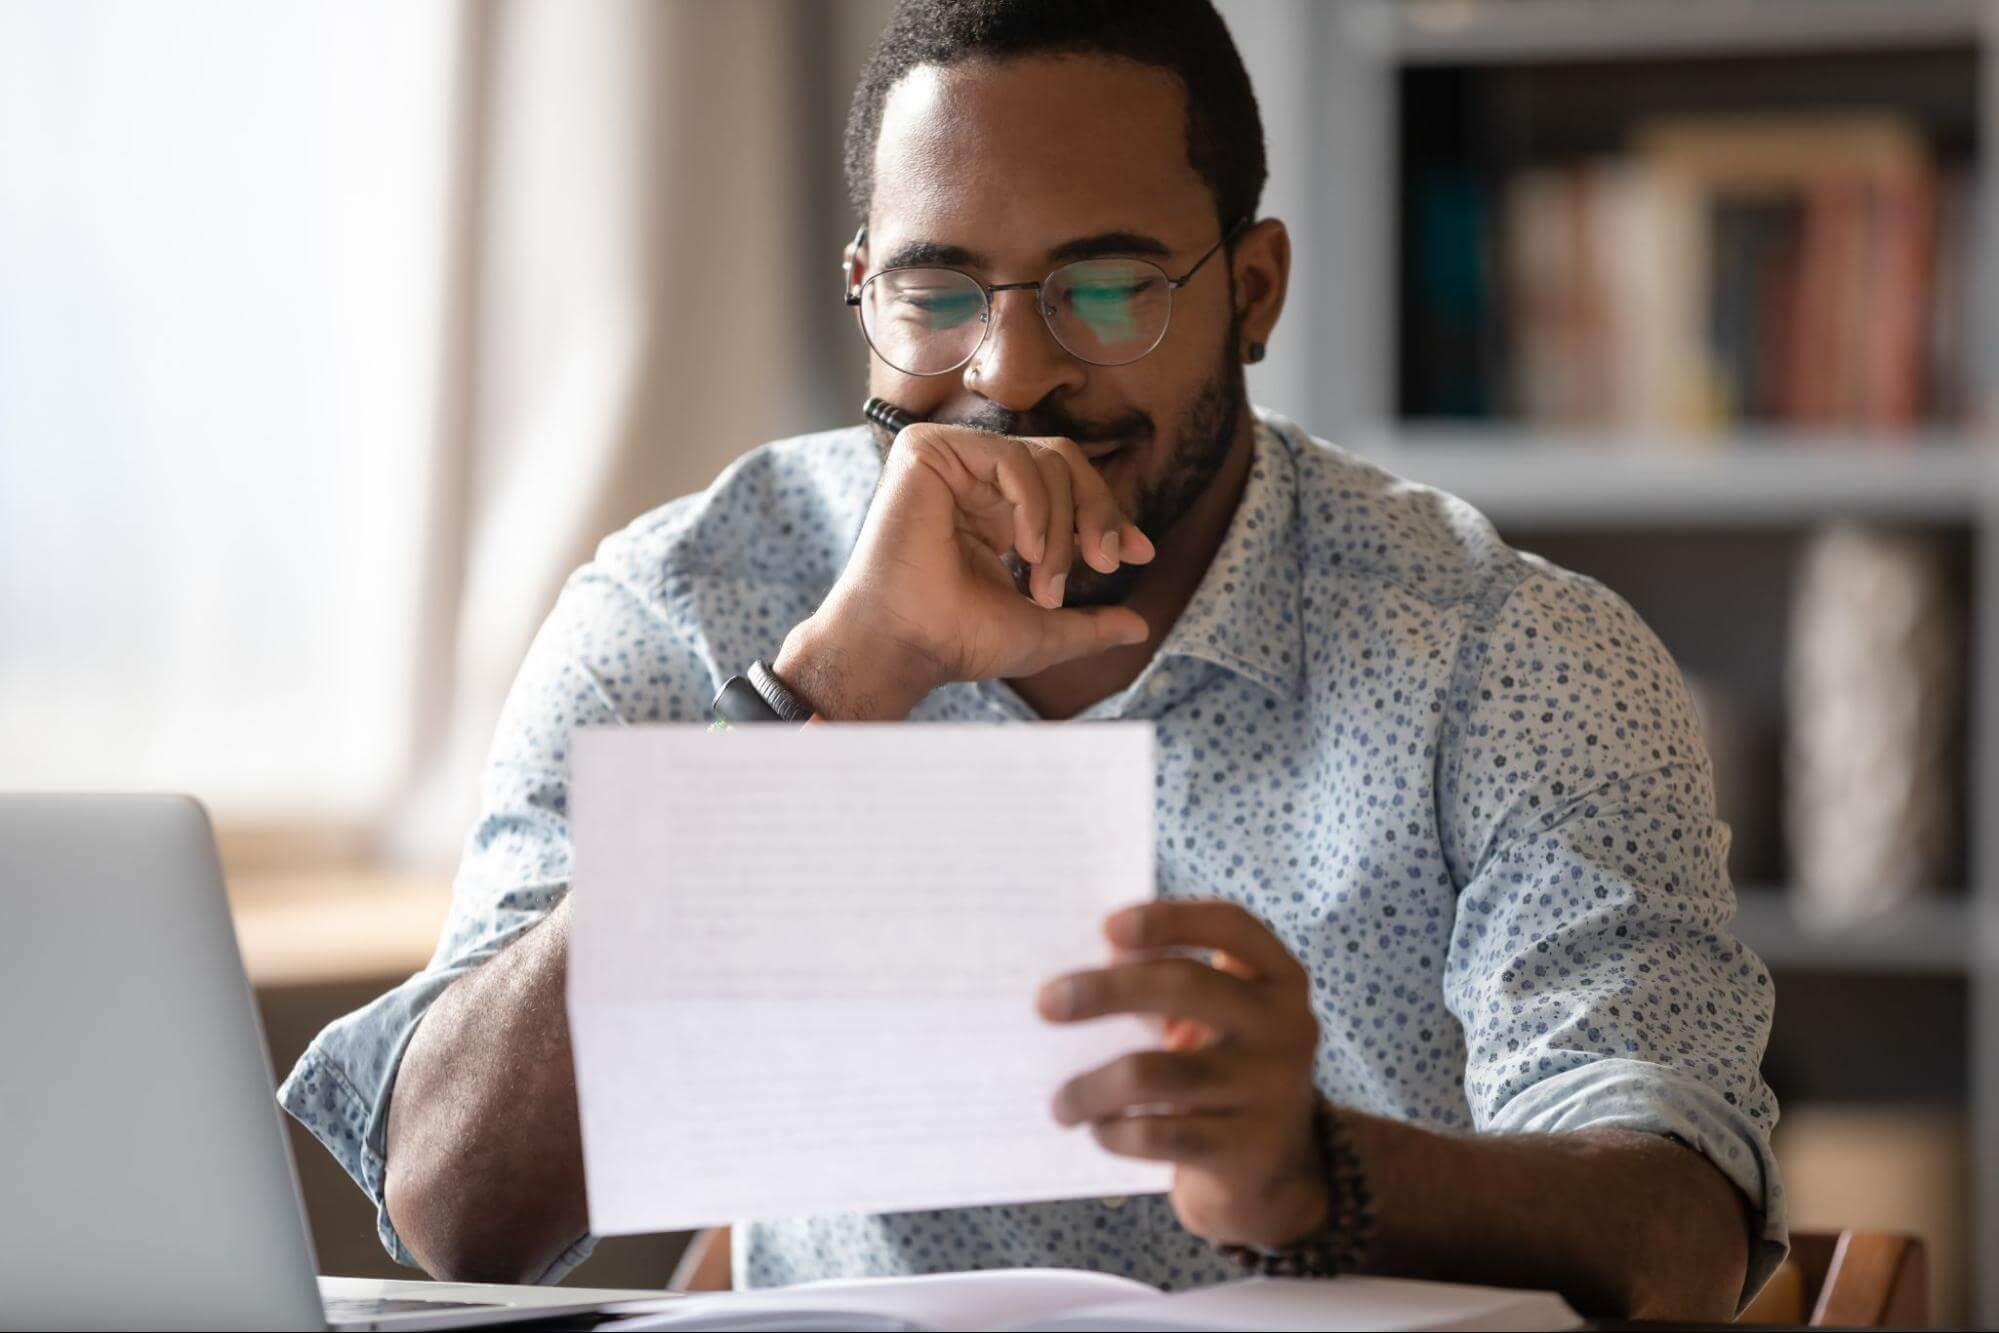 Types of budgets: A man looks over his budget